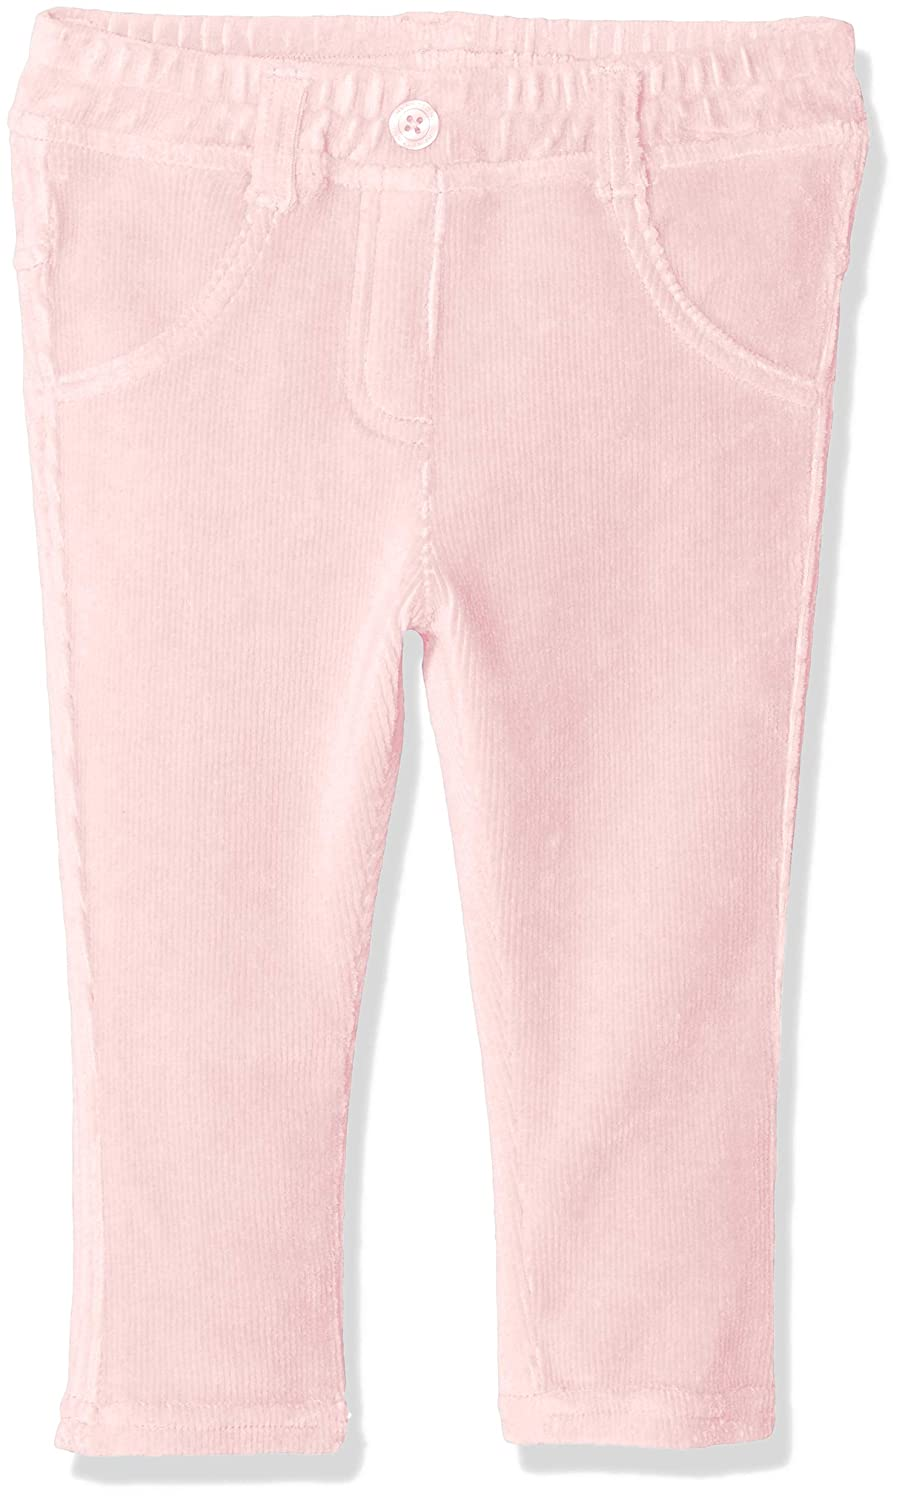 United Colors of Benetton Trousers, Pantalones para Bebés 4DZB571PE